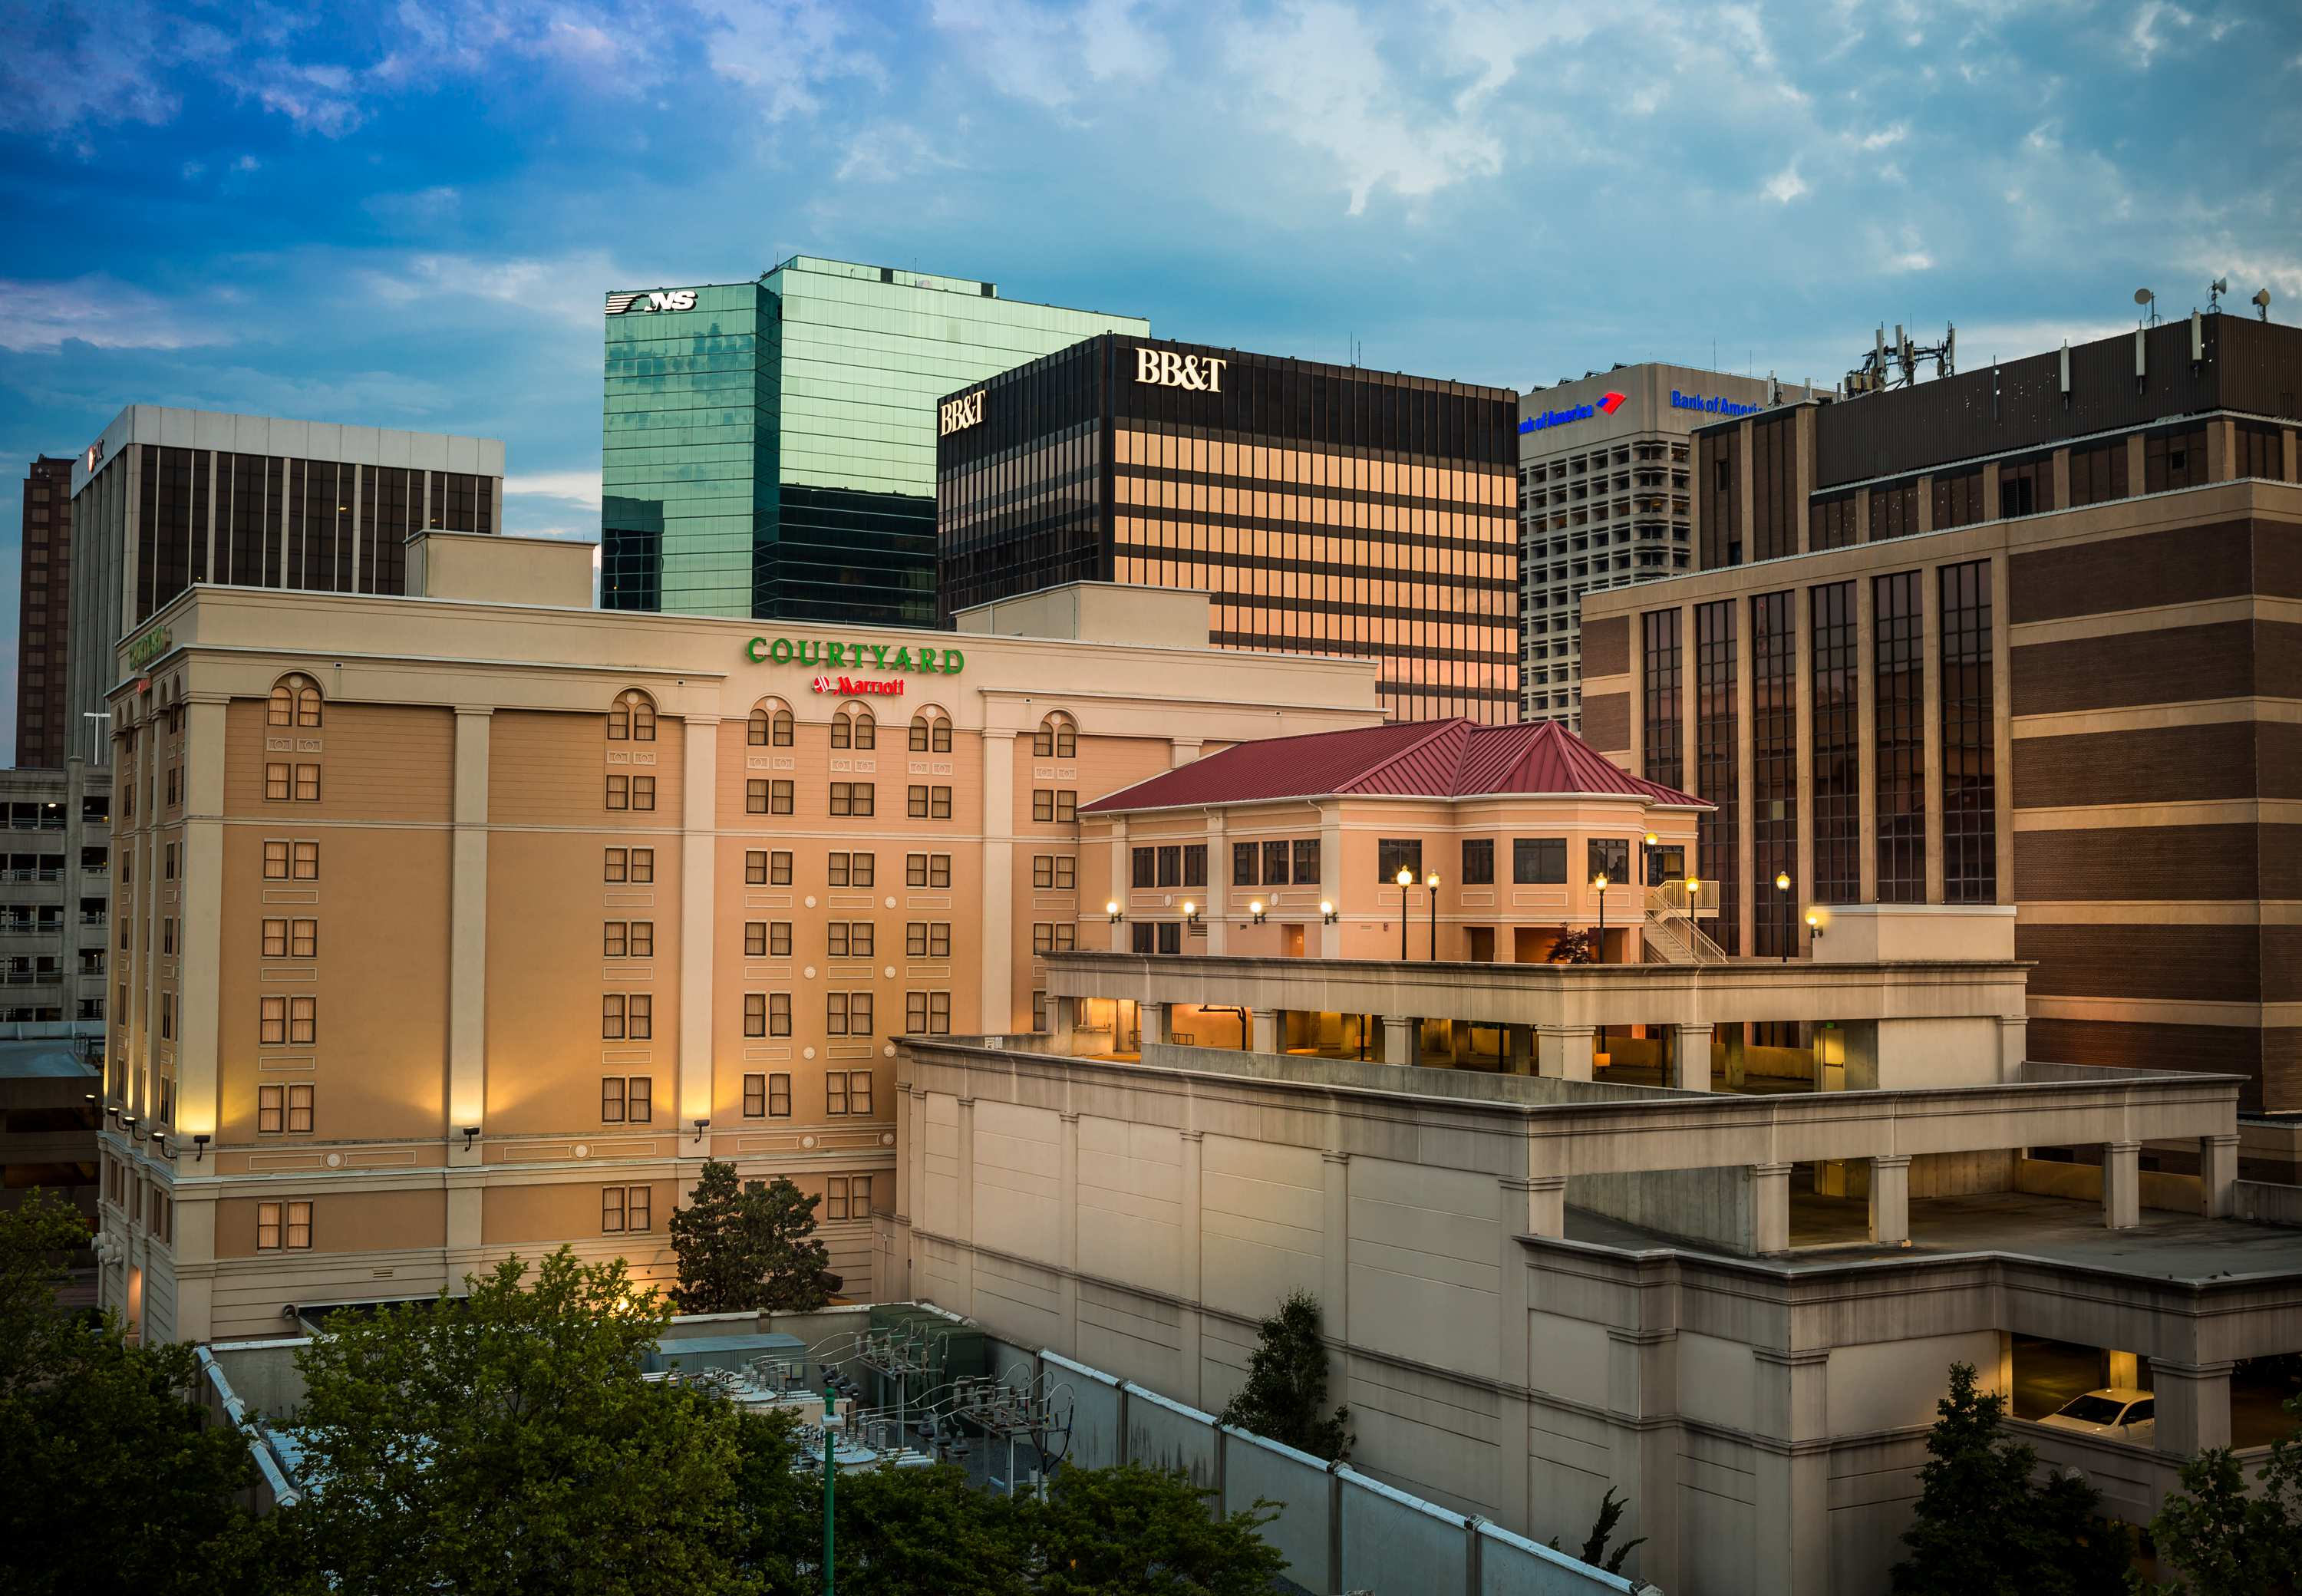 Courtyard by marriott norfolk downtown norfolk va - Wyndham garden norfolk downtown norfolk va ...